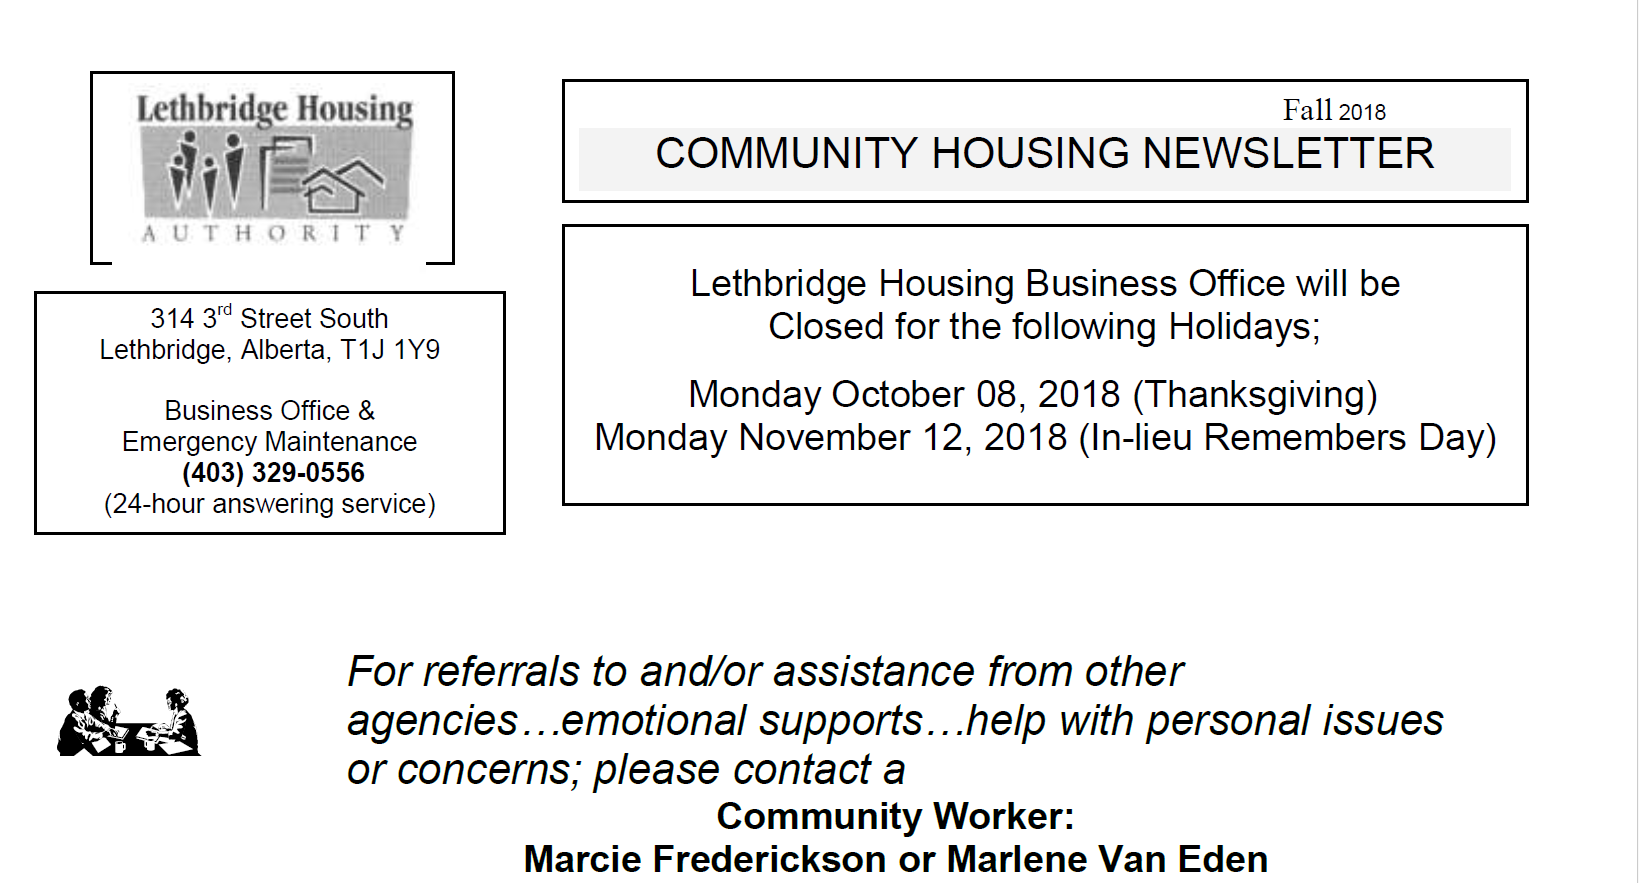 Community Housing Fall 2018 Newsletter